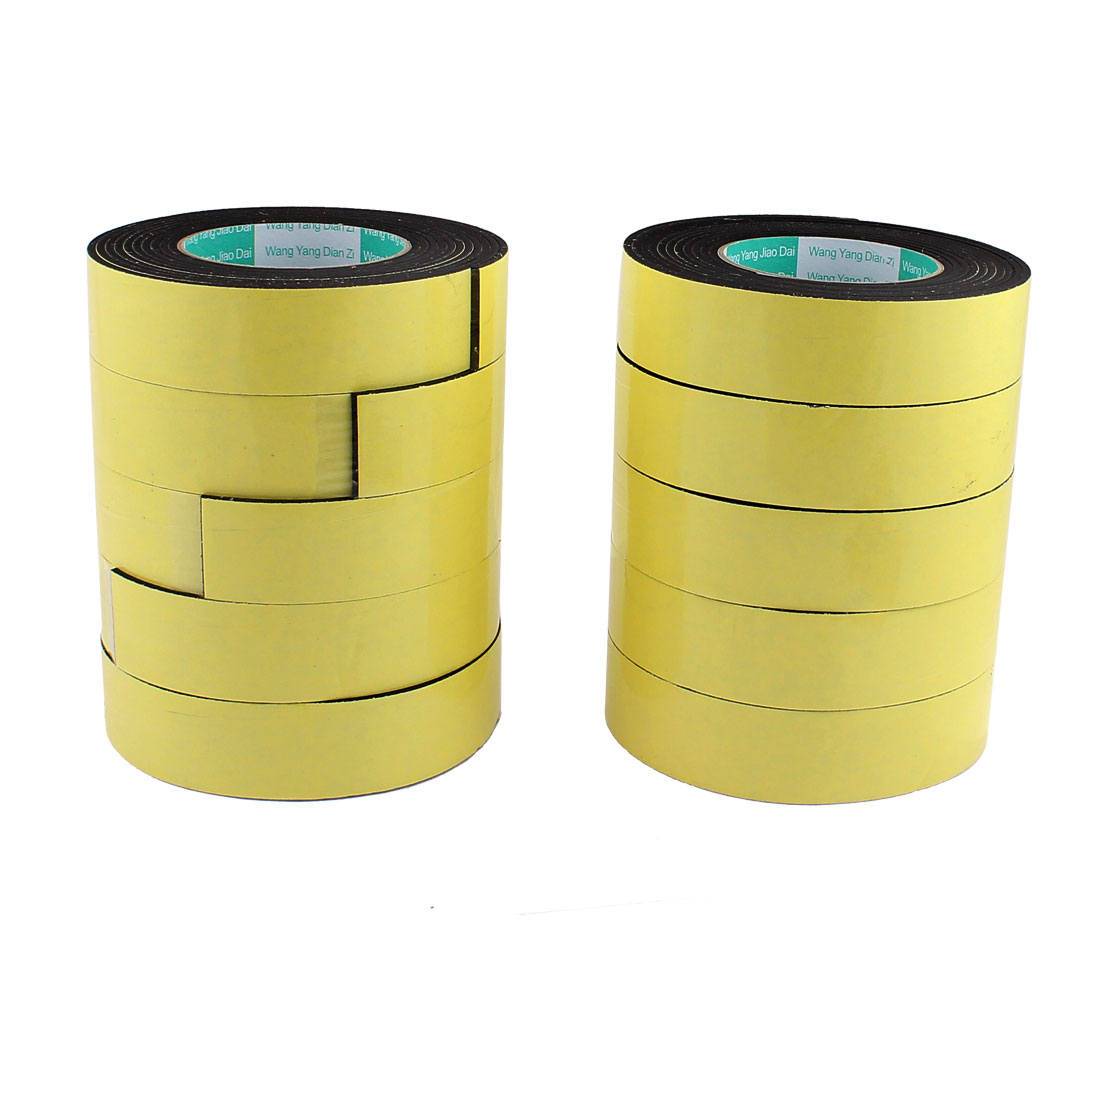 10 Pcs 3.5CM Width 4M Length 3MM Thick Single Sided Sealing Shockproof Sponge Tape